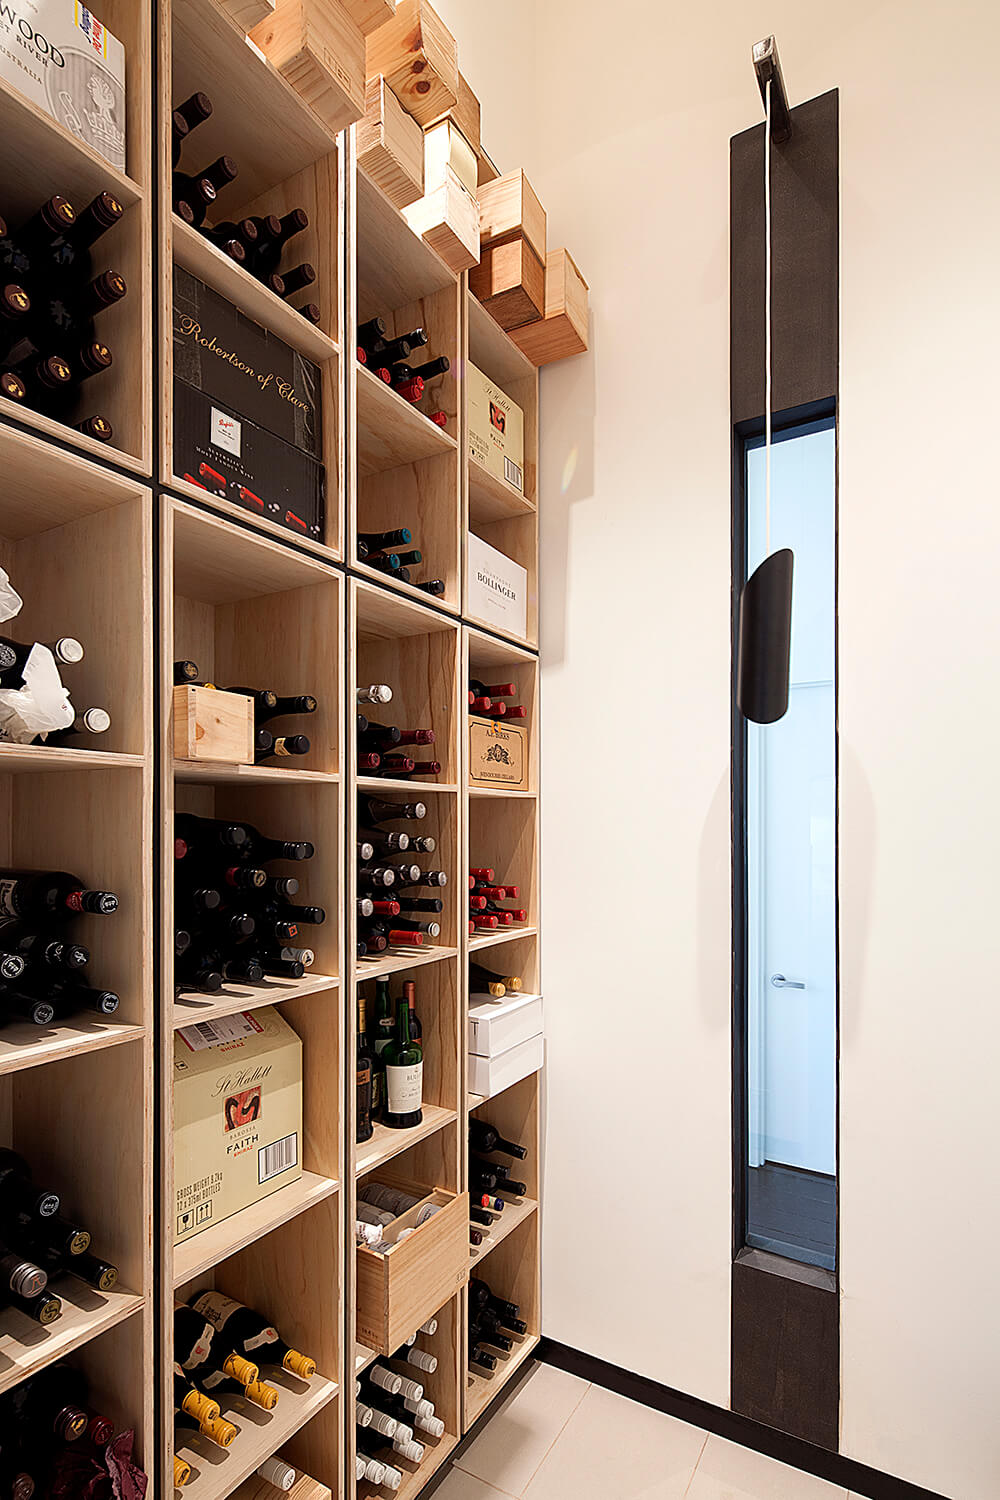 The home boasts a suite of features like this large wine storage room, stacked to the ceiling with cubic natural wood shelving.